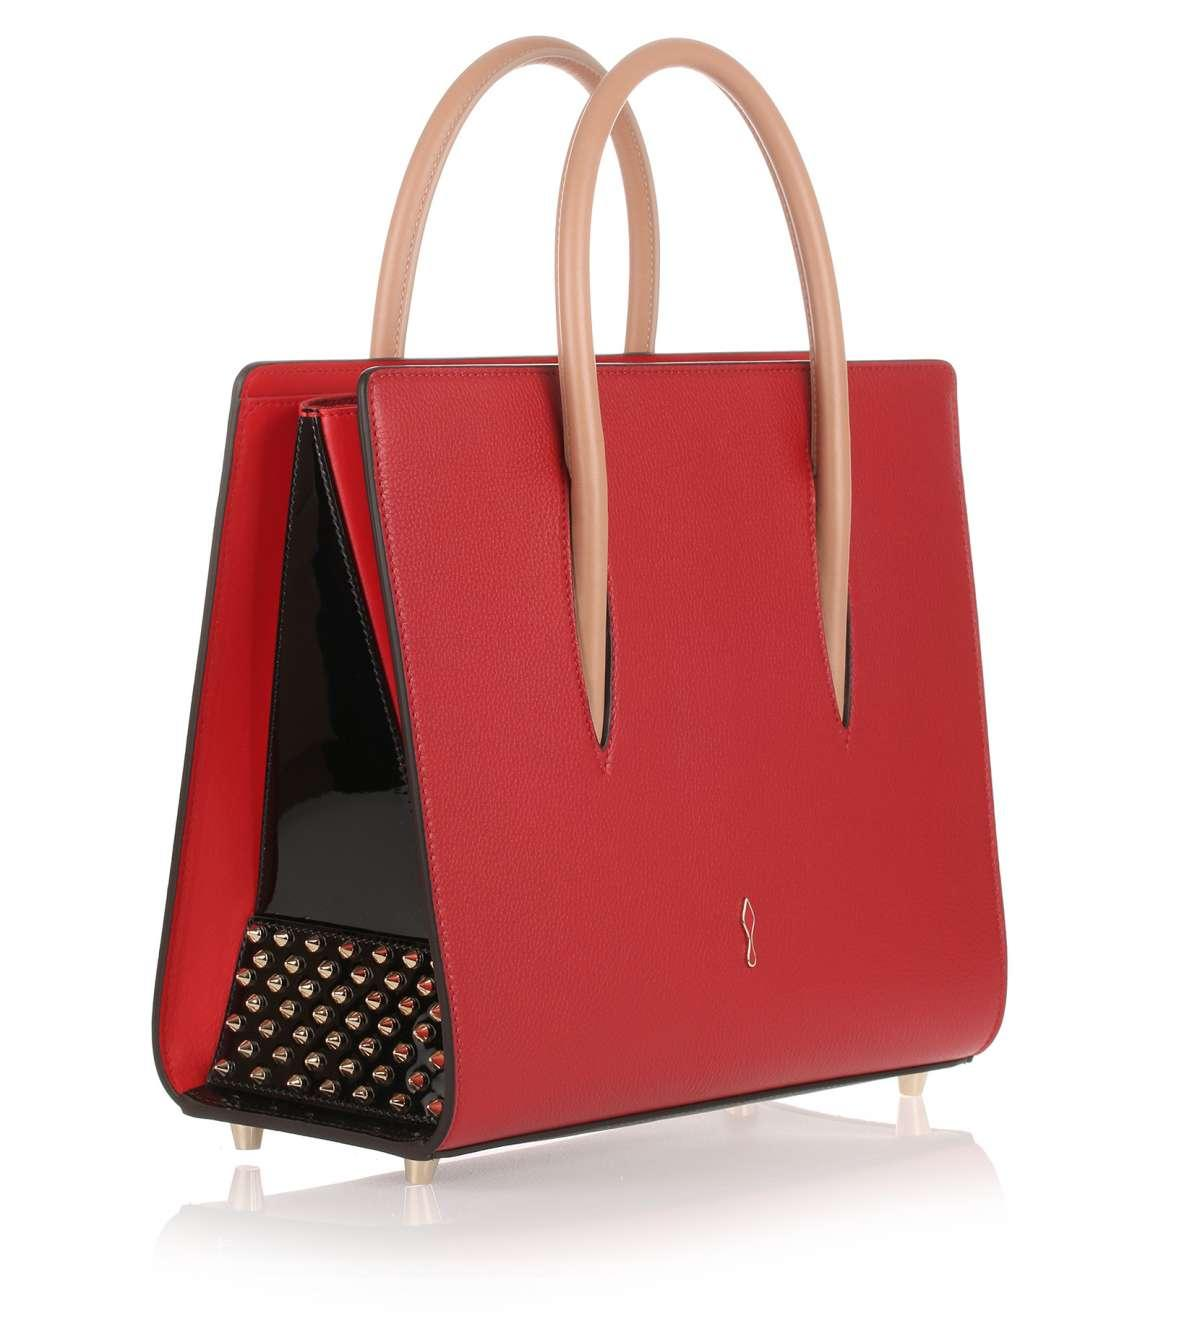 Lyst Christian Louboutin Paloma Medium Red Leather Bag Us In Red